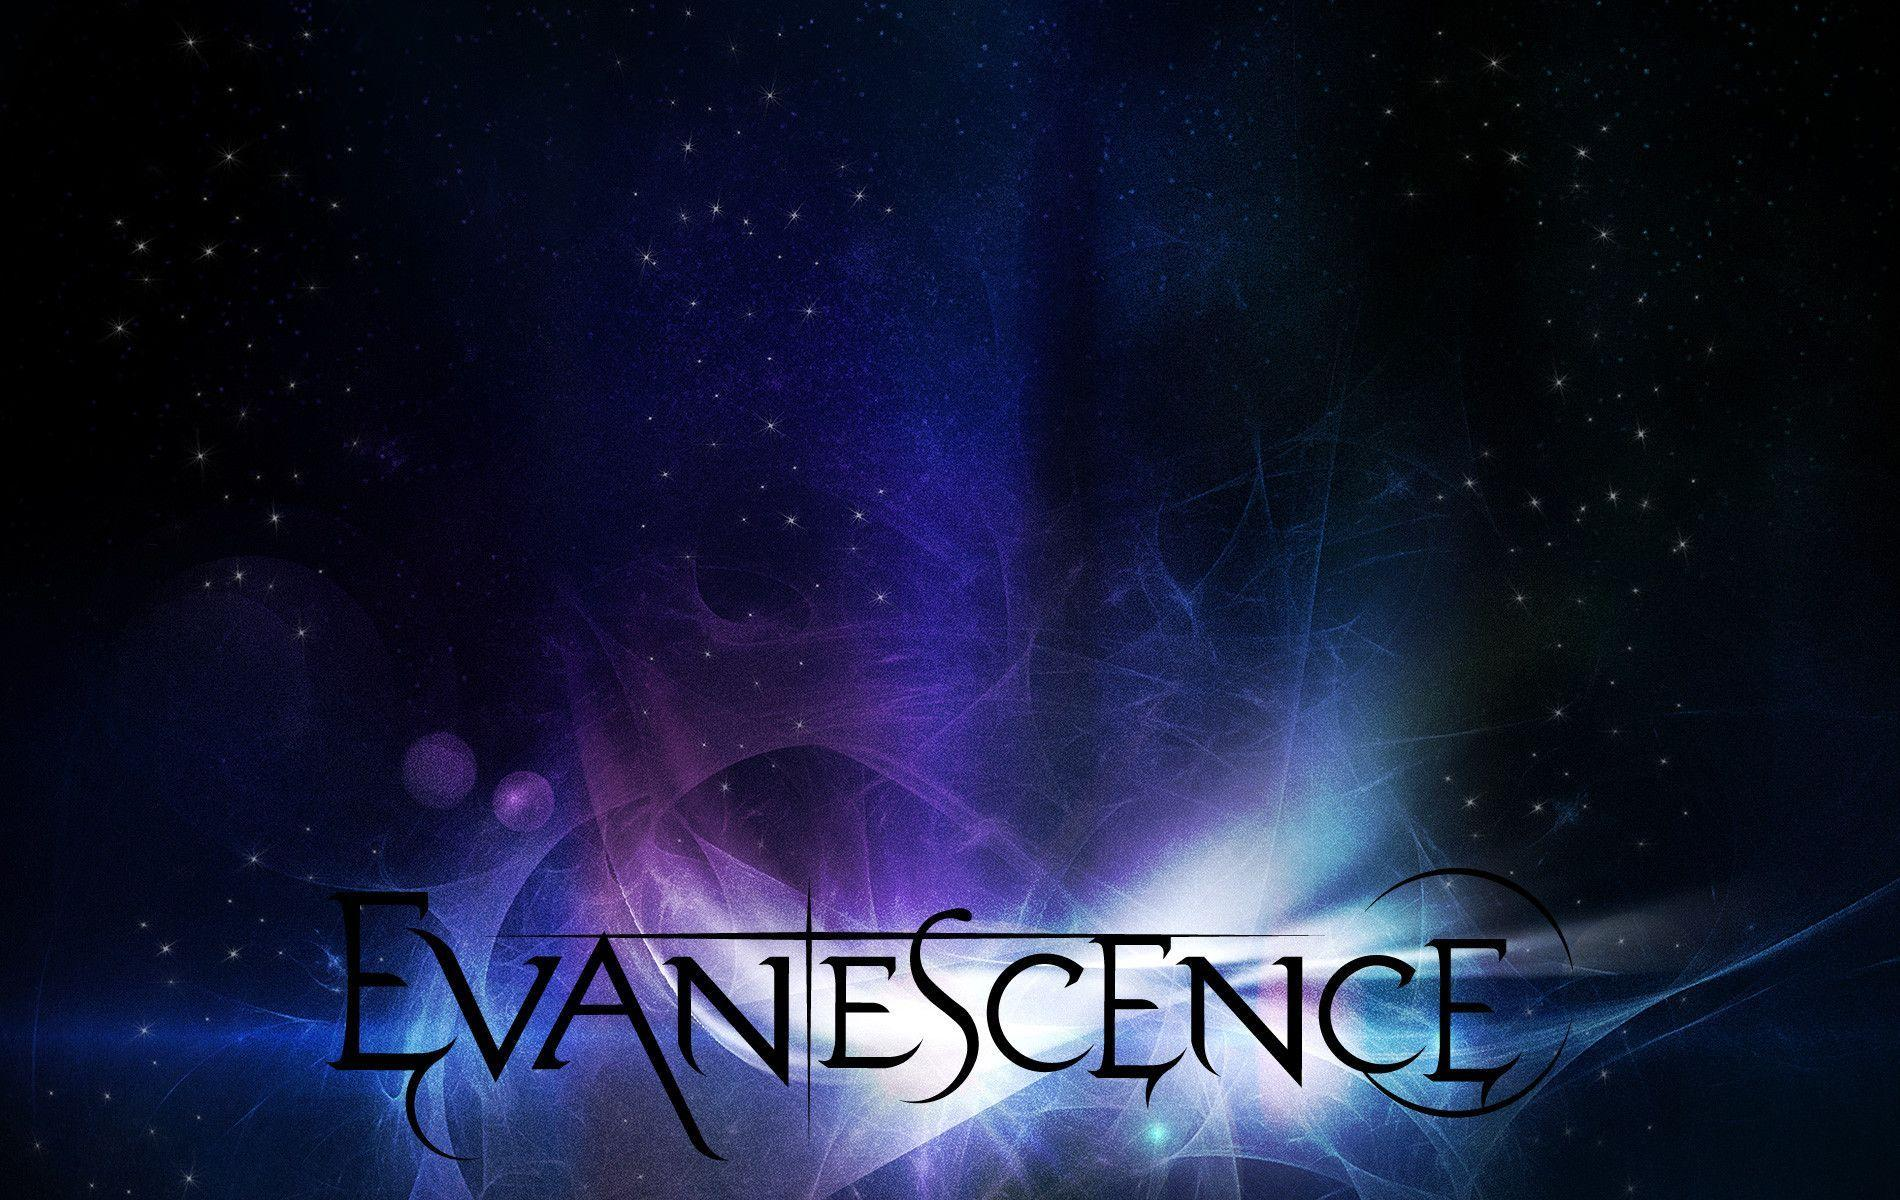 Evanescence Logo Wallpapers 1900x1200